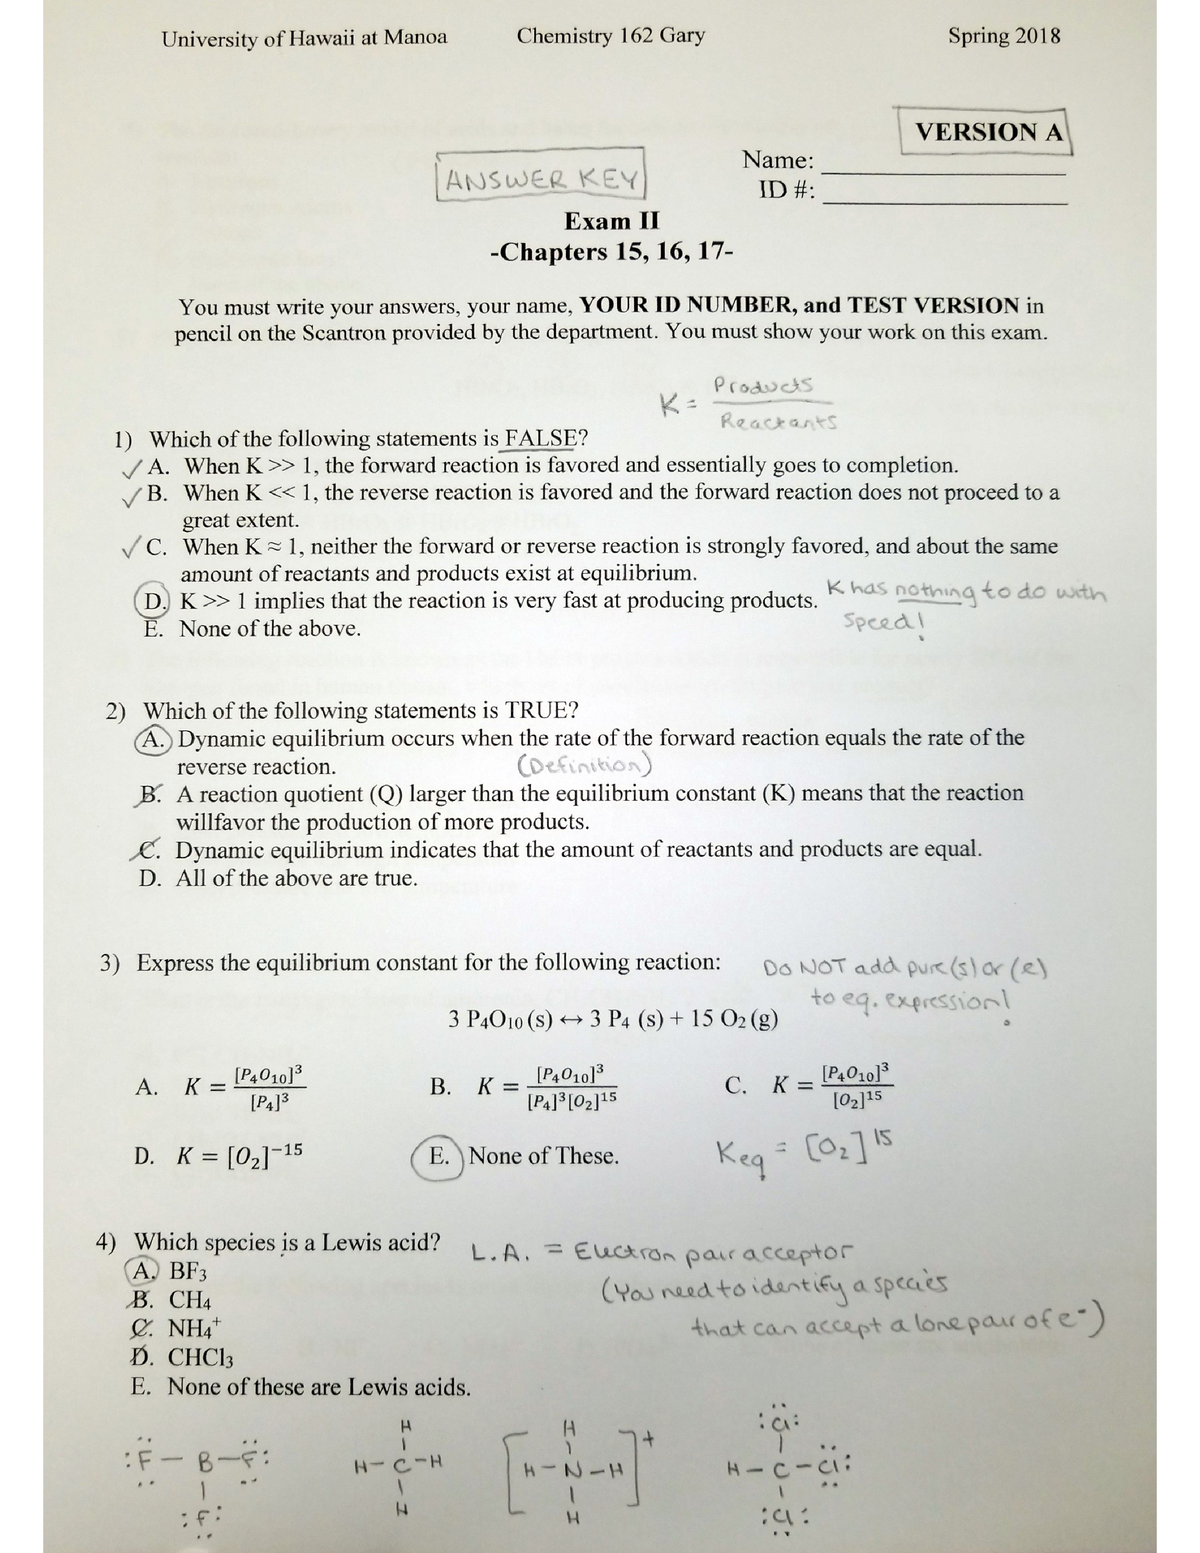 Chem 162 Exam 2 Version A, answers - CHEM162 - UH Manoa